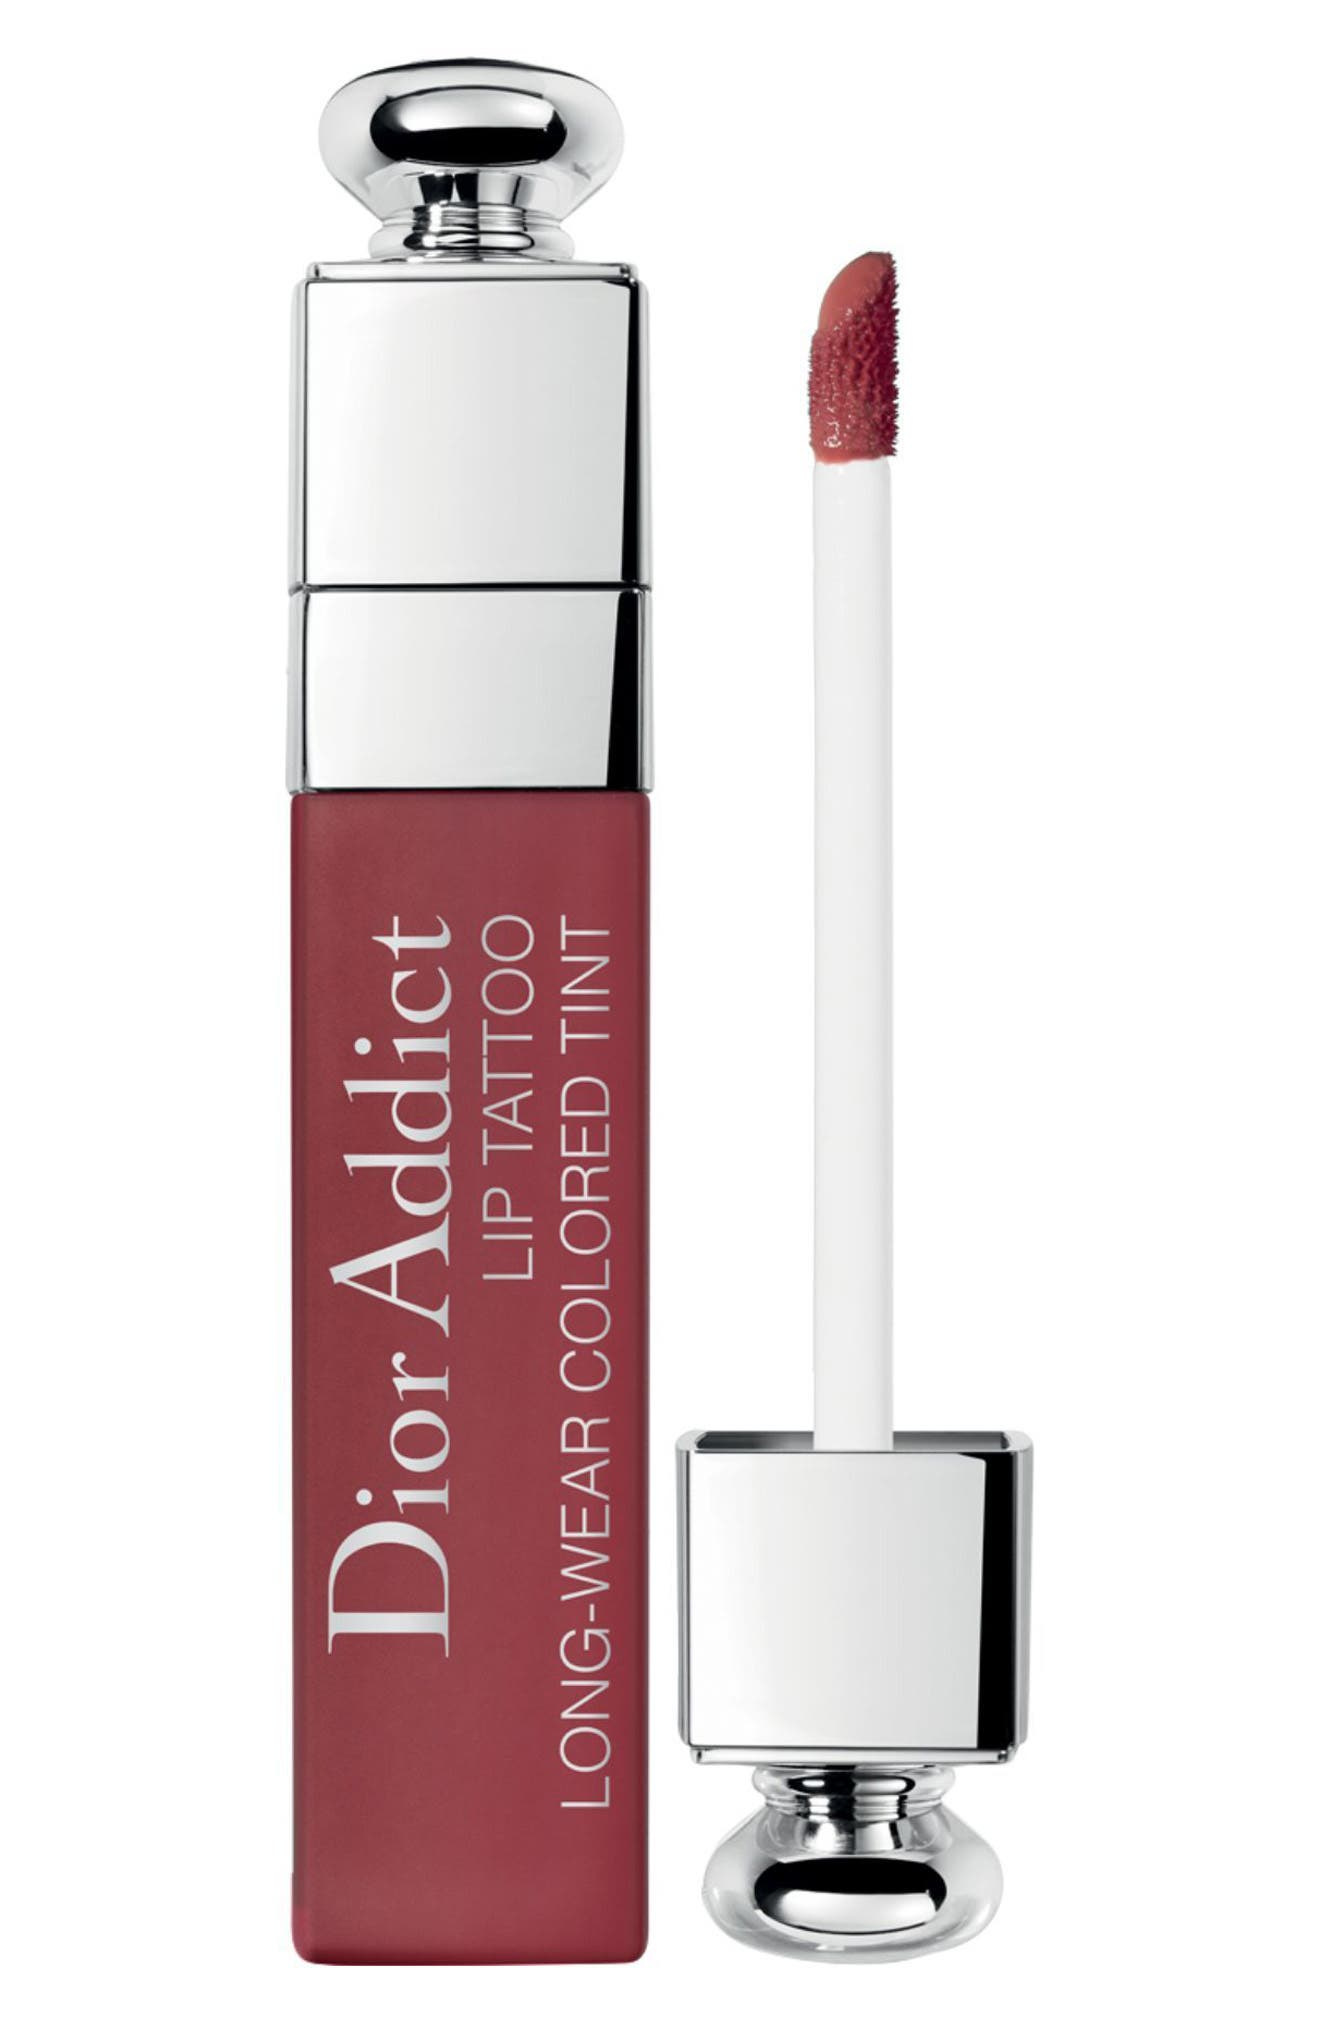 Dior Addict Lip Tattoo Long-Wearing Color Tint - 771 Natural Berry